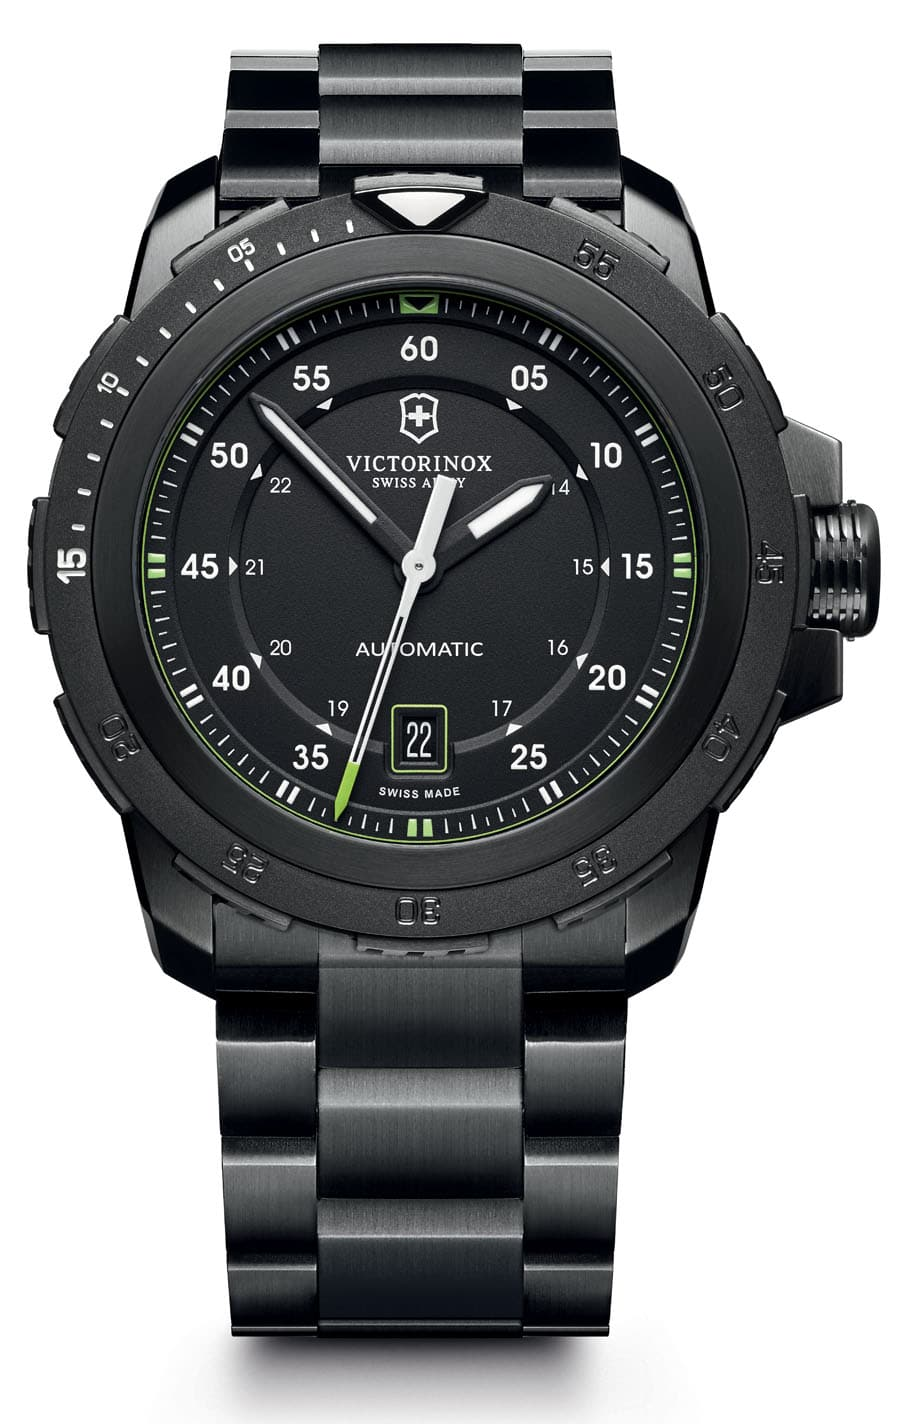 Victorinox Mechanical Watches